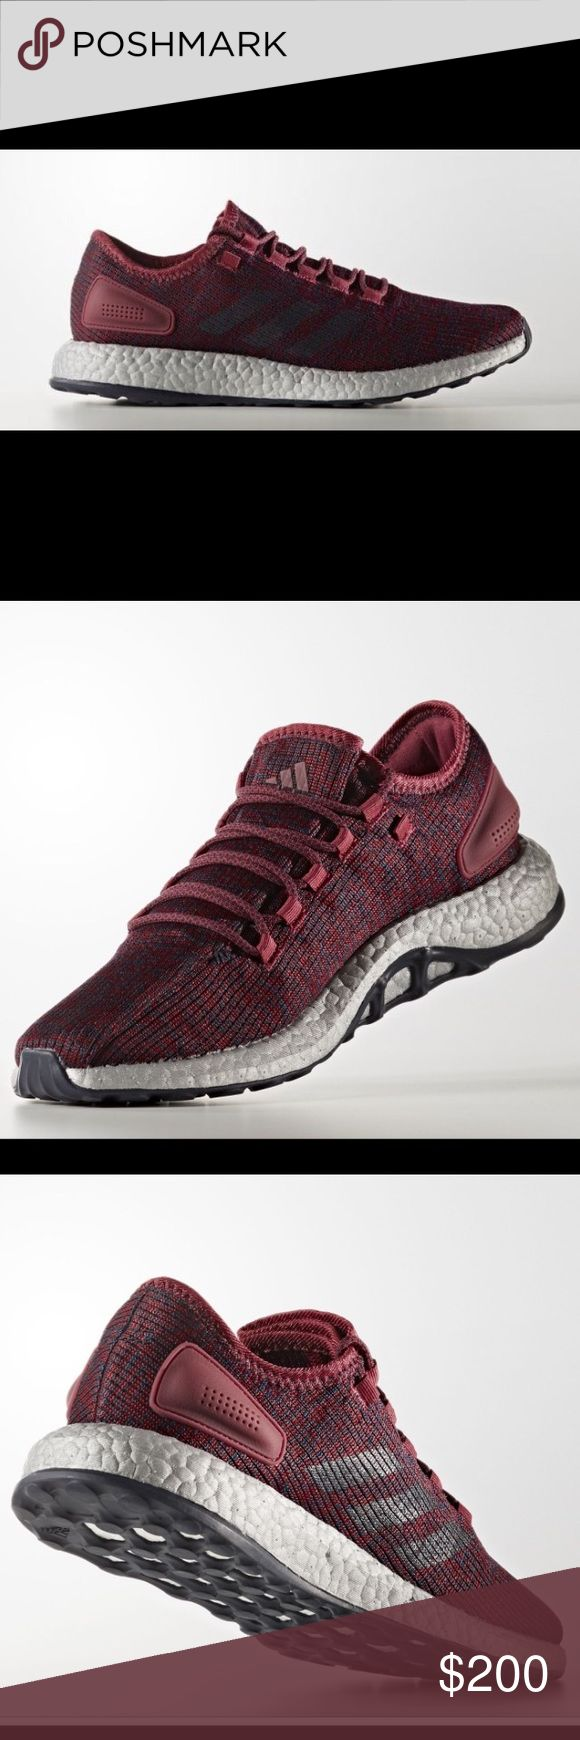 ⭐️NEW⭐️Adidas Pureboost Shoes😎 Brand NEW Adidas Pureboost Shoes, Men's running shoes Size 14, mystery ruby color, SOLD OUT ON ADIDAS. 😎👍 PERFECT/COMFORTABLE CONDITION😎 Make an offer😉👍 adidas Shoes Athletic Shoes